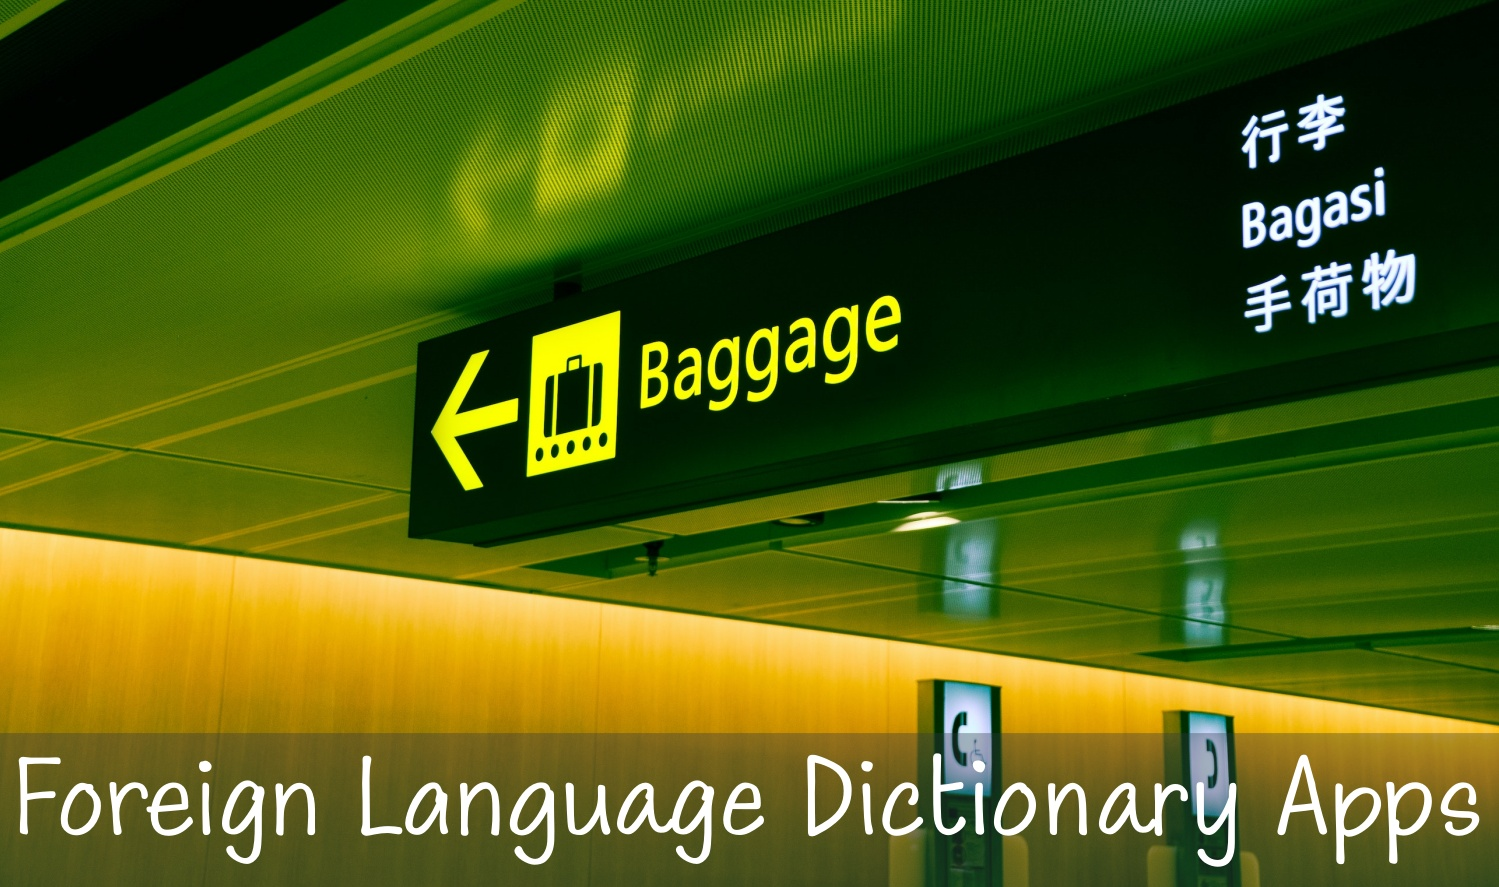 Best Foreign Language Dictionary Apps for iPhone and iPad